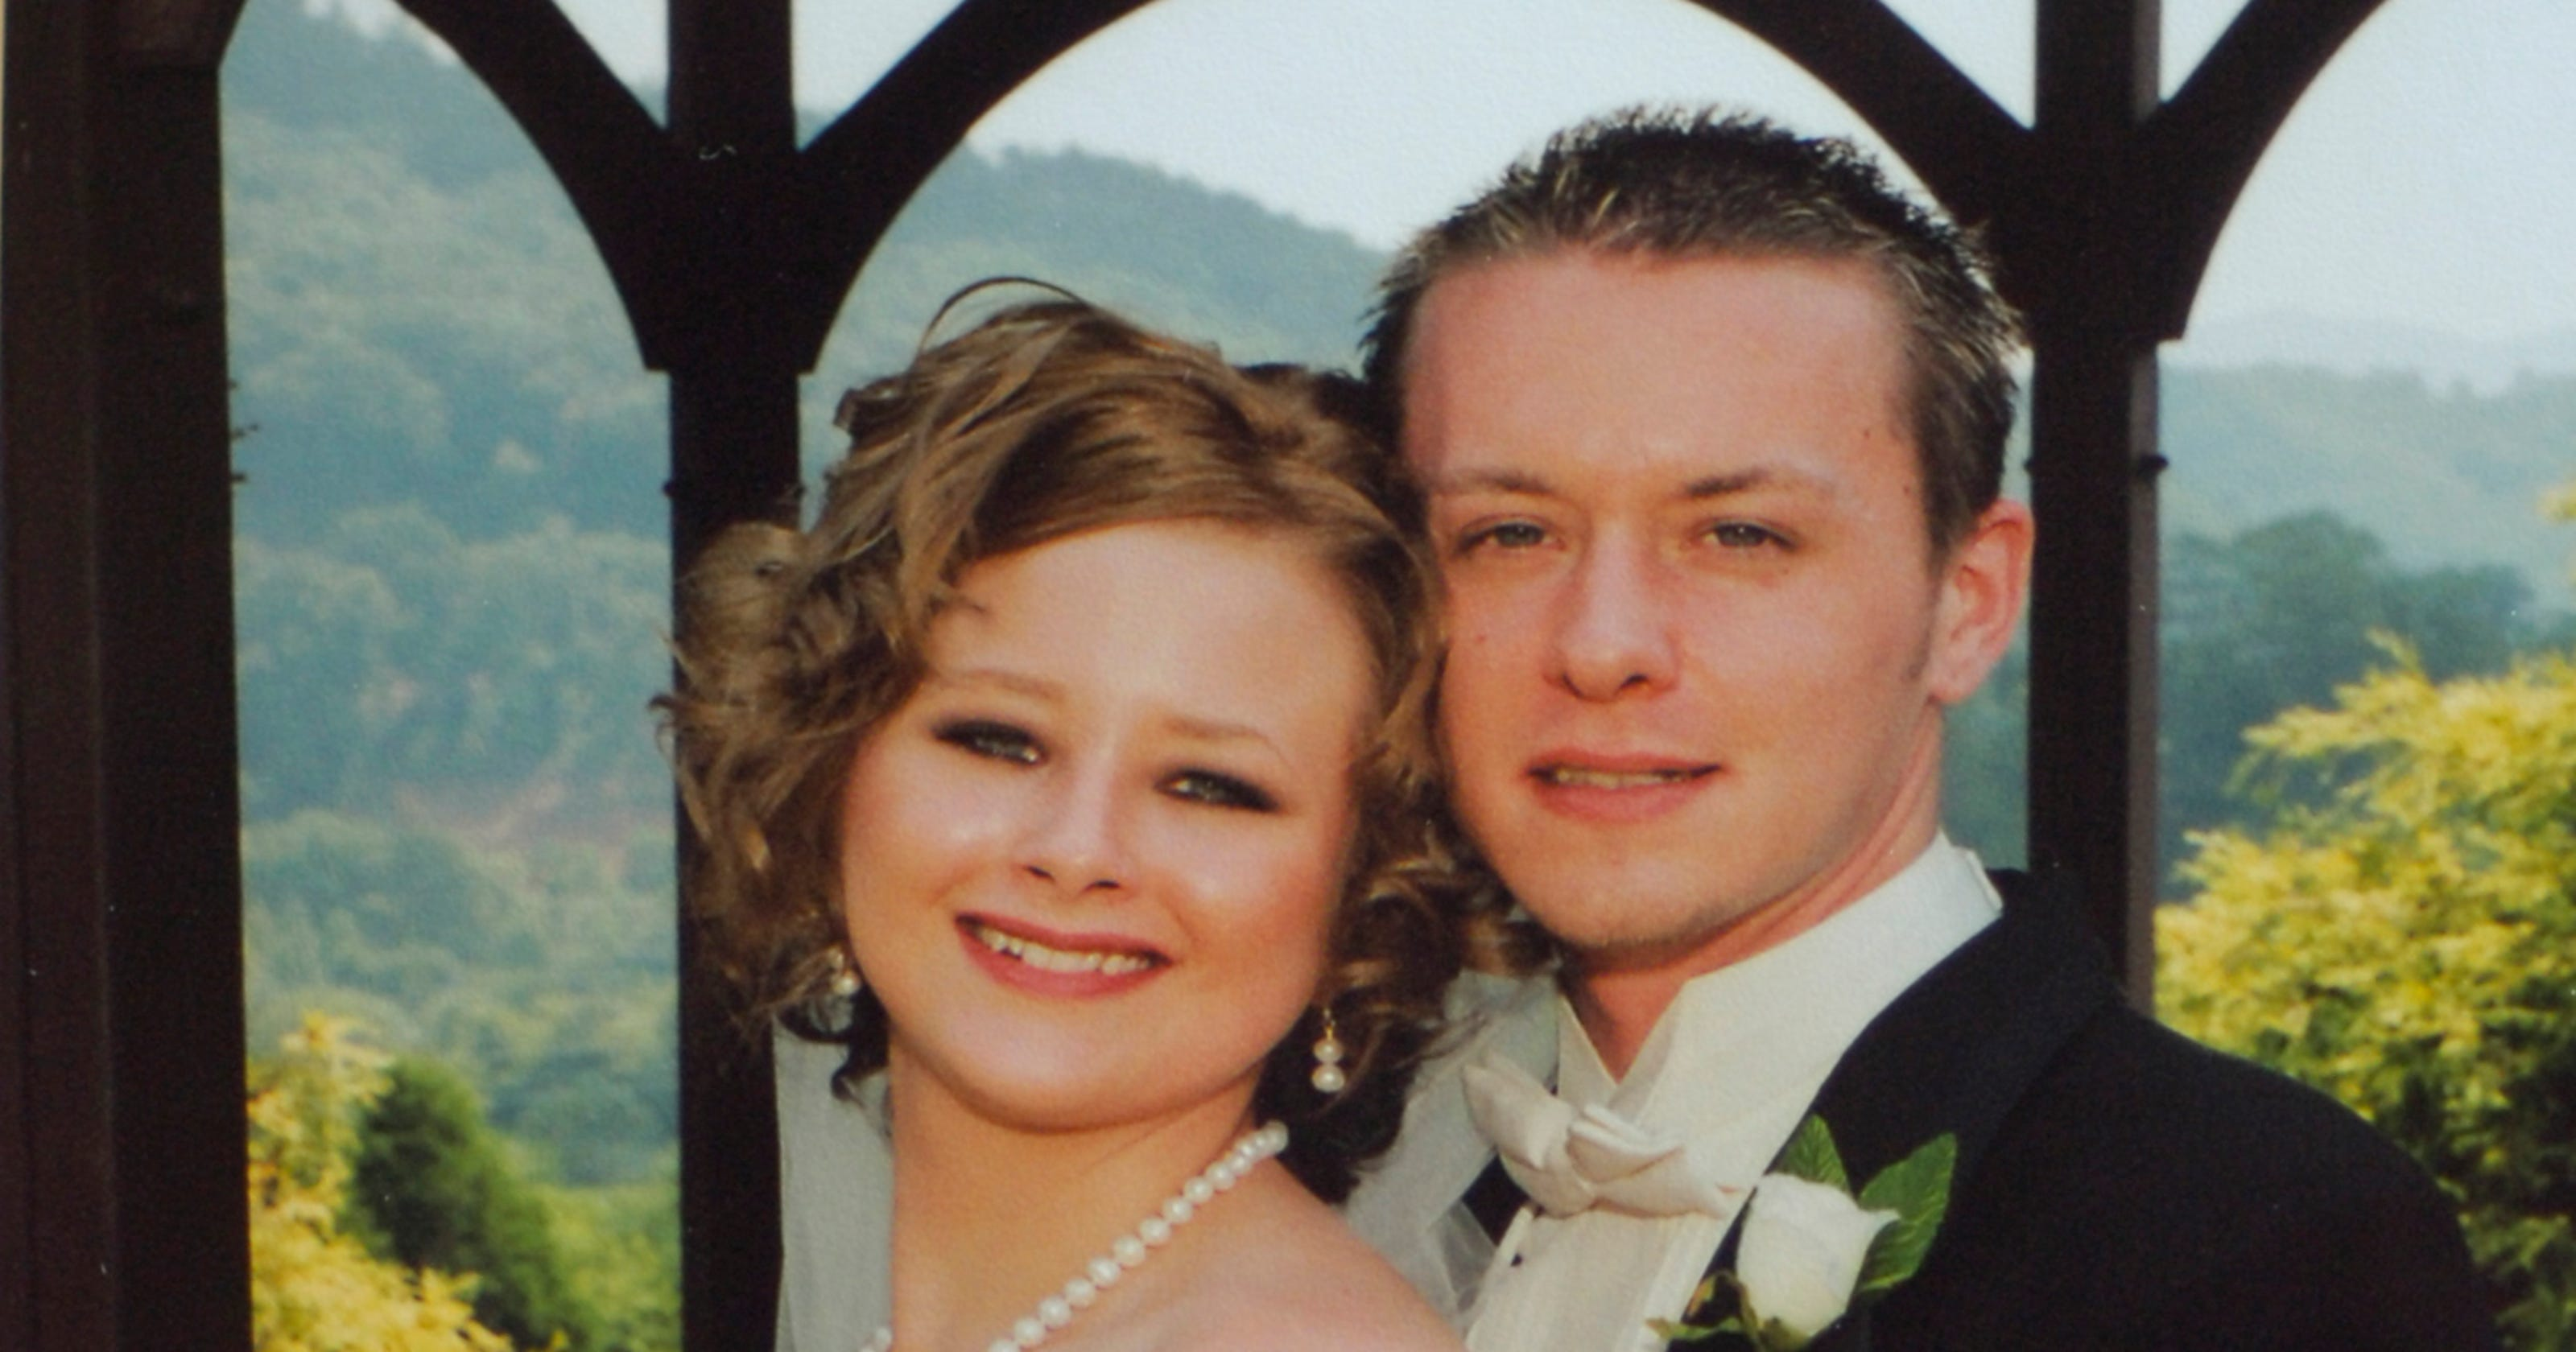 Drugged driver who killed Sevier County newlyweds granted parole